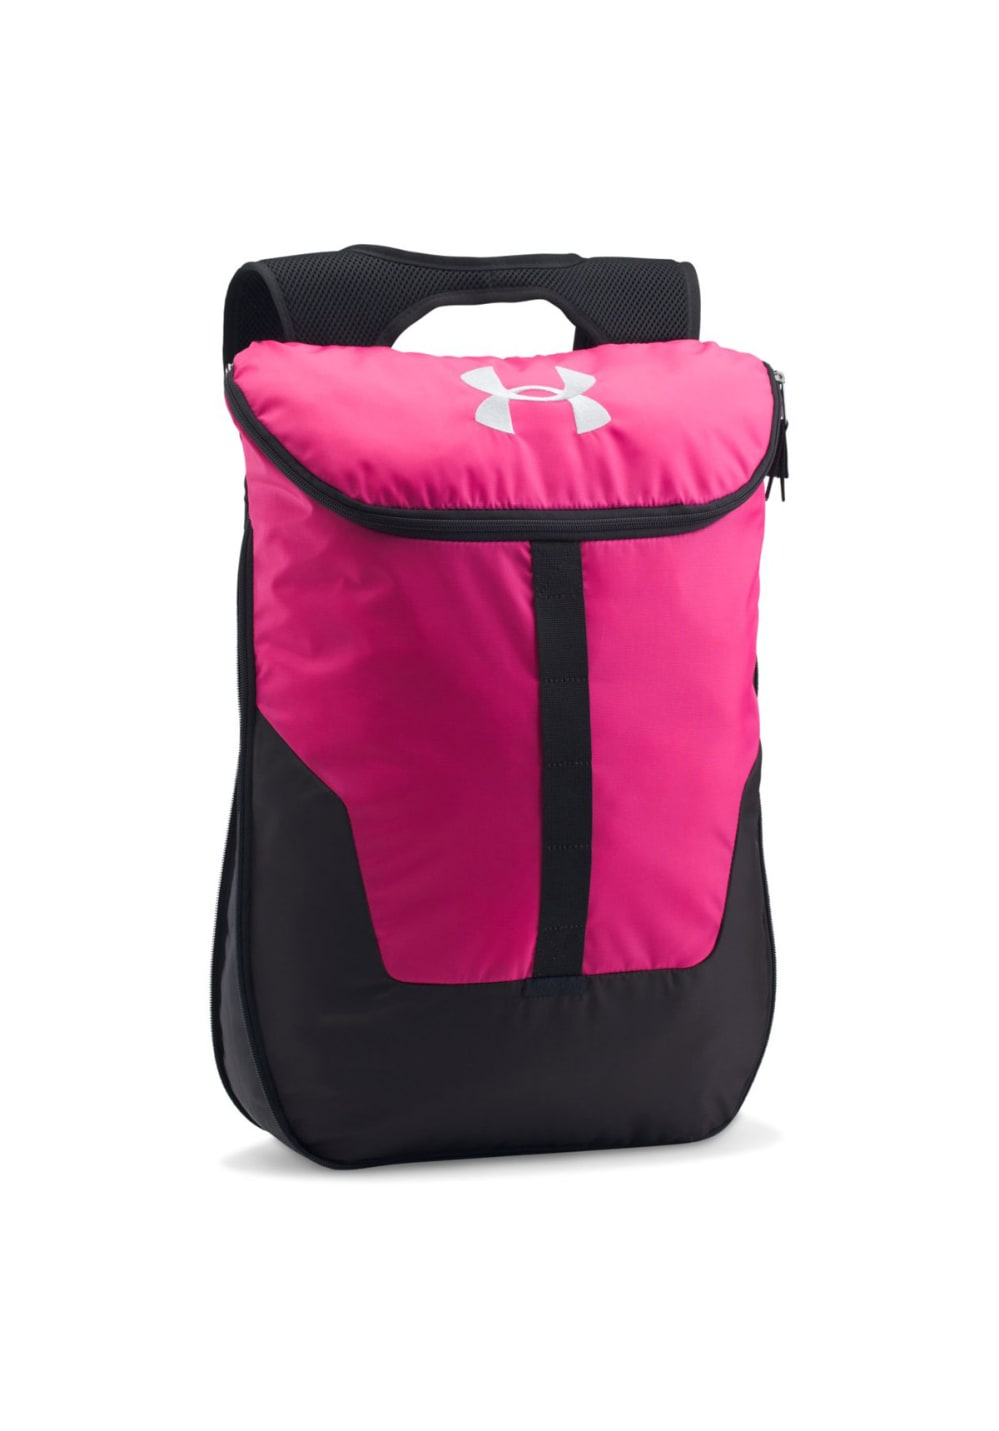 1865a9809a2 Under Armour Expandable Sackpack - Backpacks - Pink | 21RUN